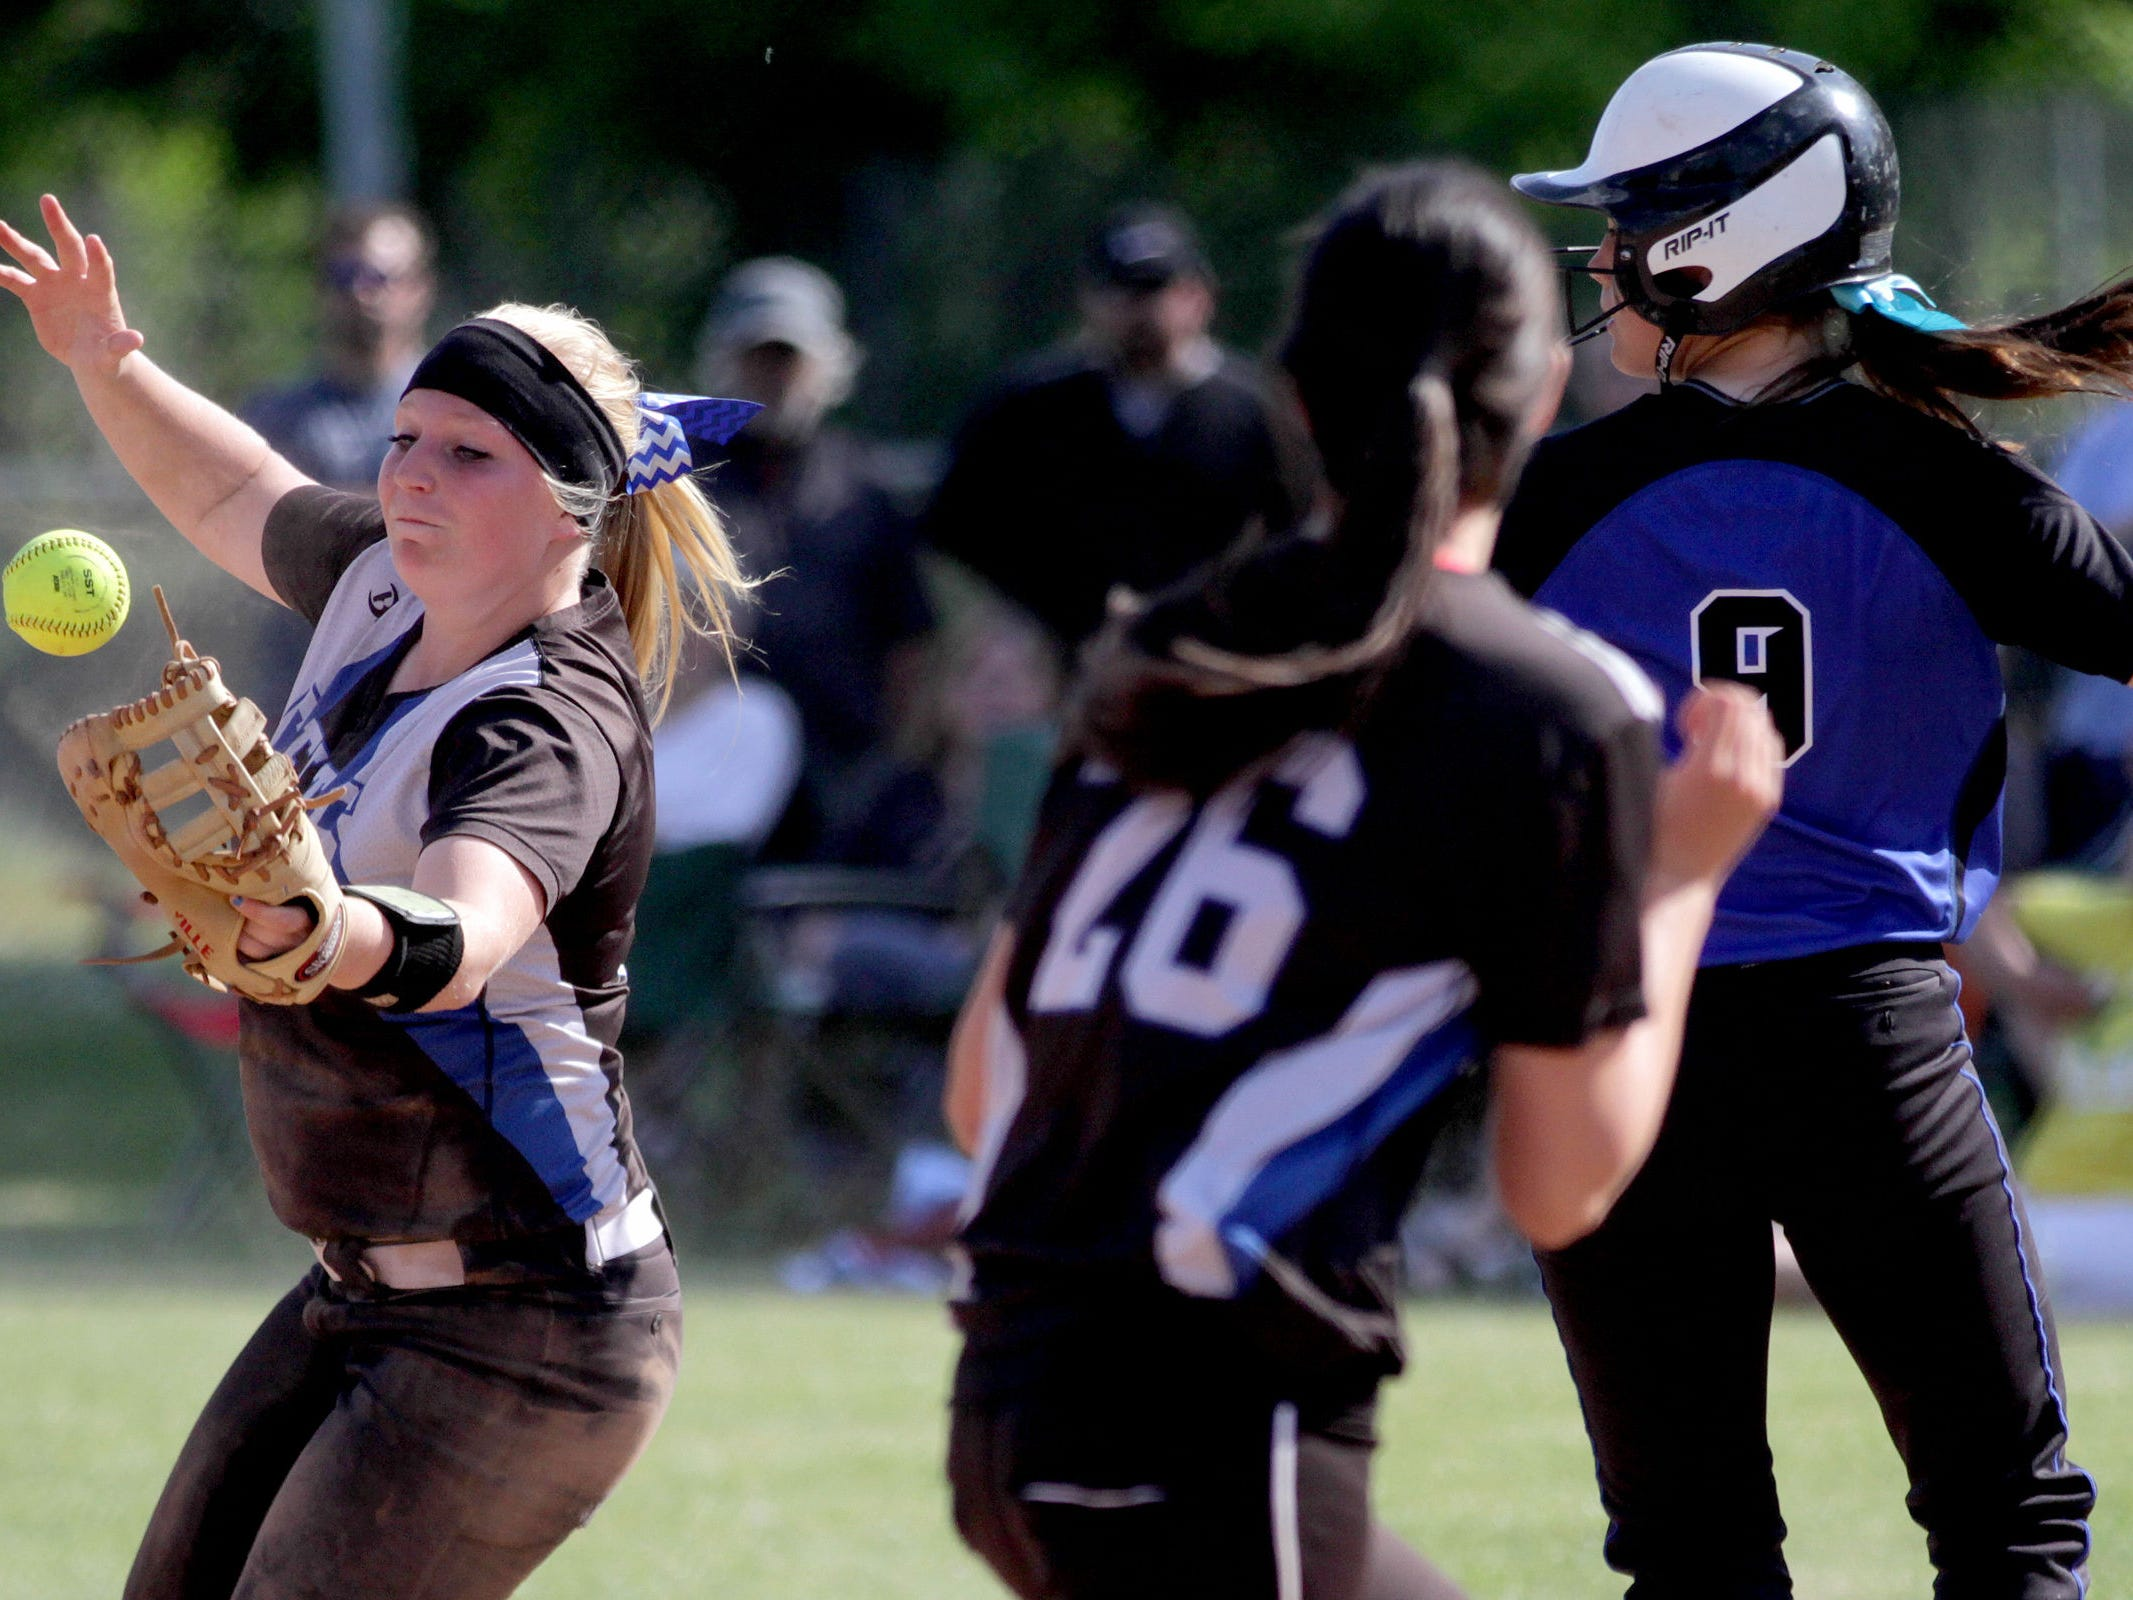 McNary's Madisen Oliver (3) tries to take Gresham's Erika Espinoza (9) out at first in the Gresham vs. McNary softball game, in the first round of the OSAA class 6A state playoffs, at McNary High School in Keizer on Monday, May 25, 2015. McNary won the game 11-7.